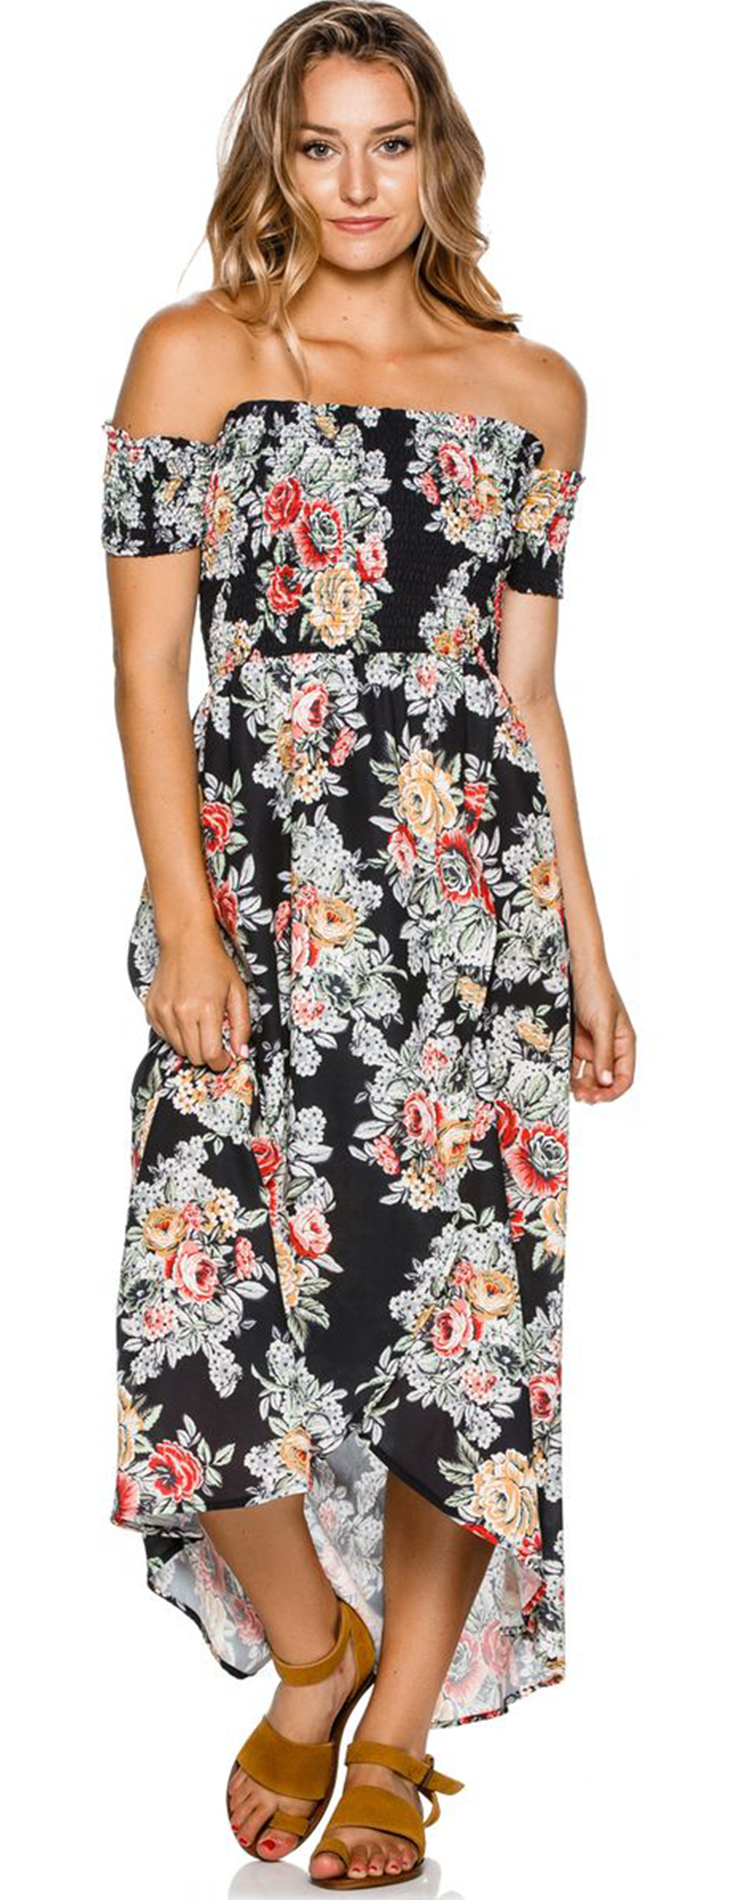 LUCY LOVE TRANQUILITY DRESS